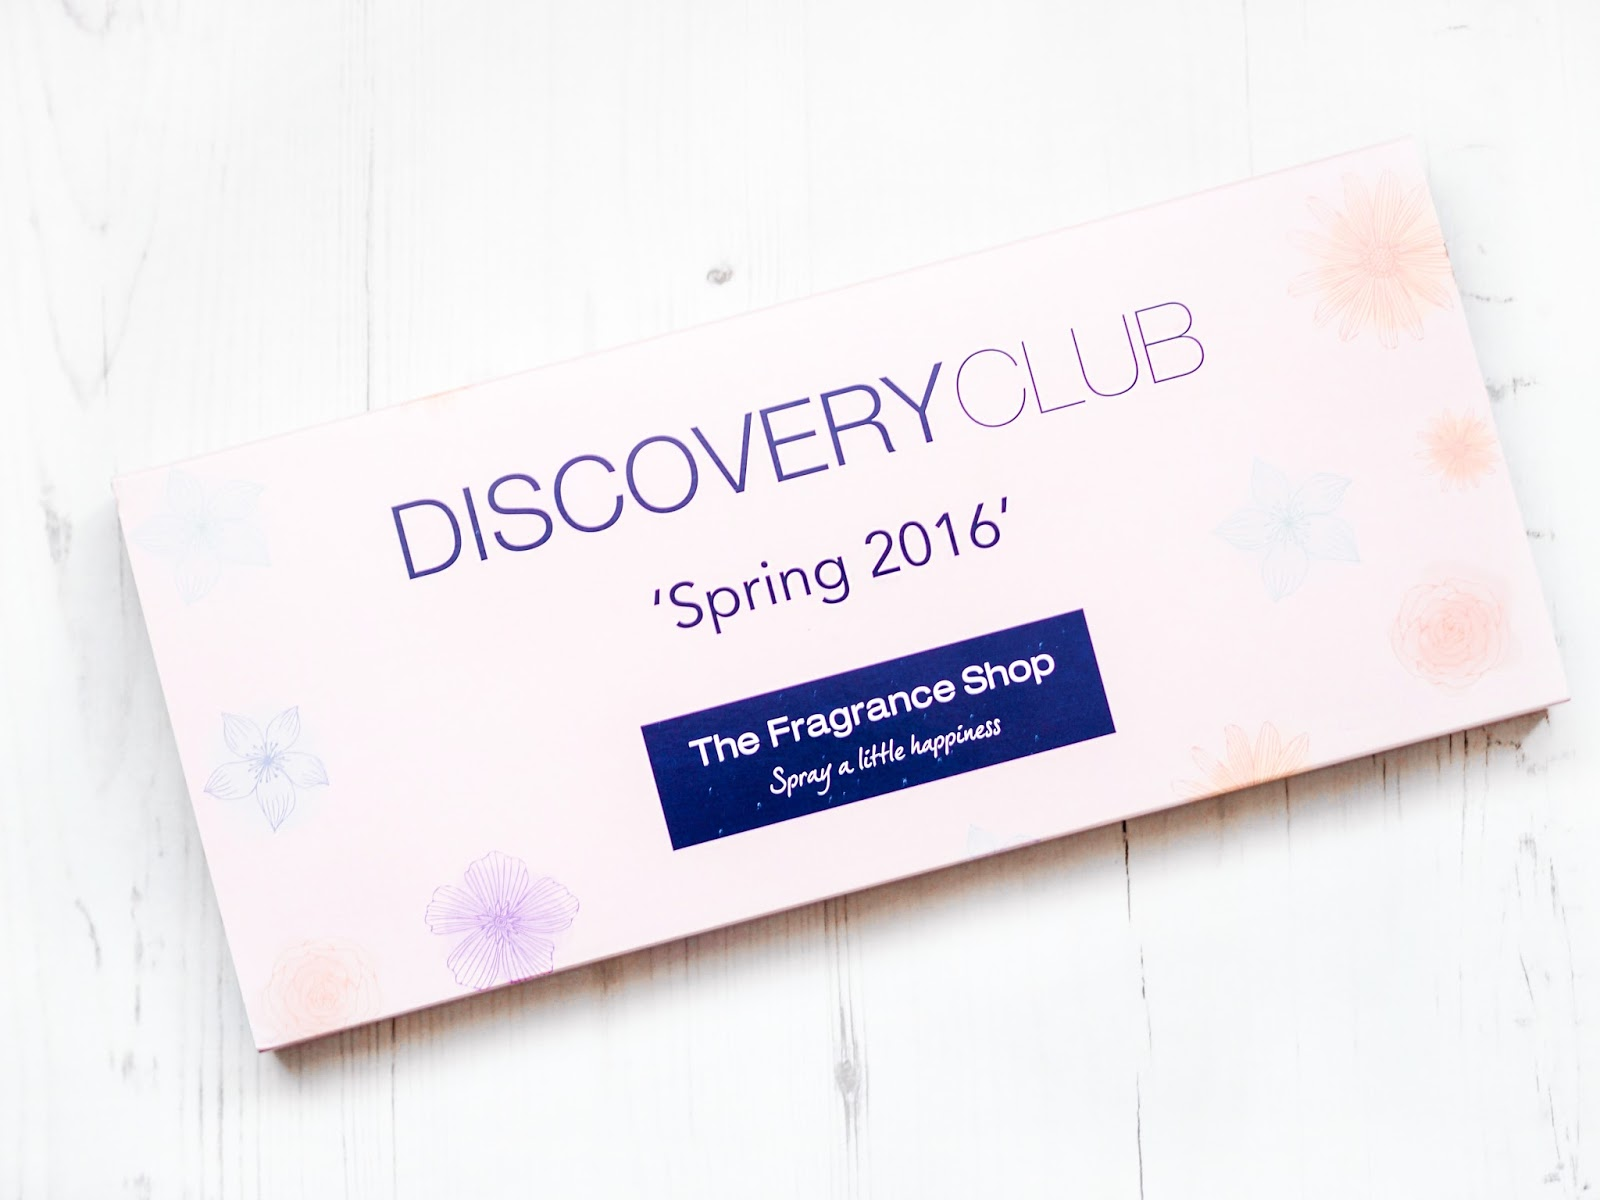 The Fragrance Shop Discovery Club Spring 2016